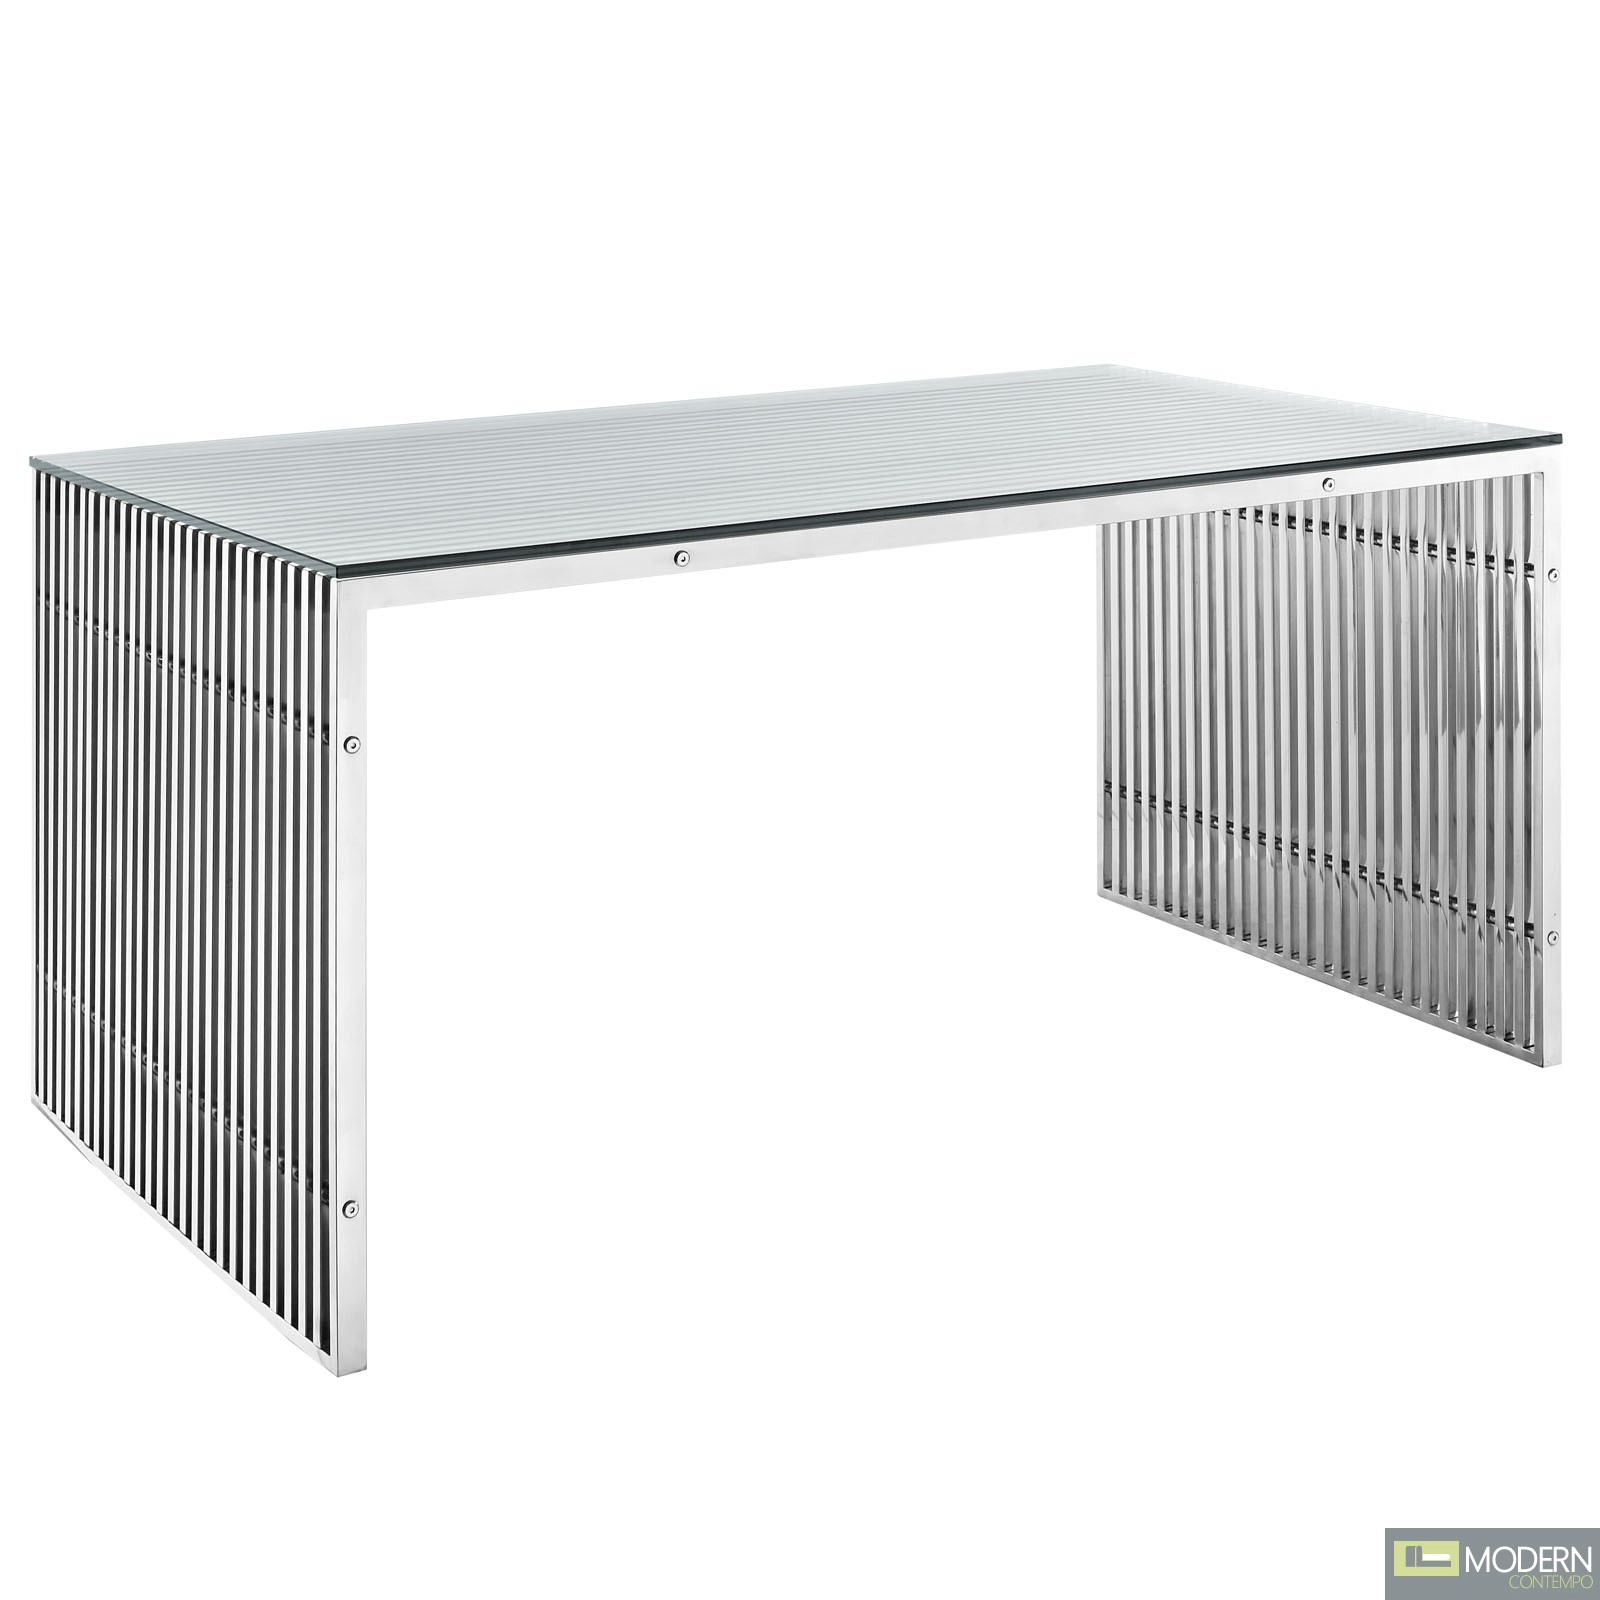 Gridiron Stainless Steel Dining Table, Silver